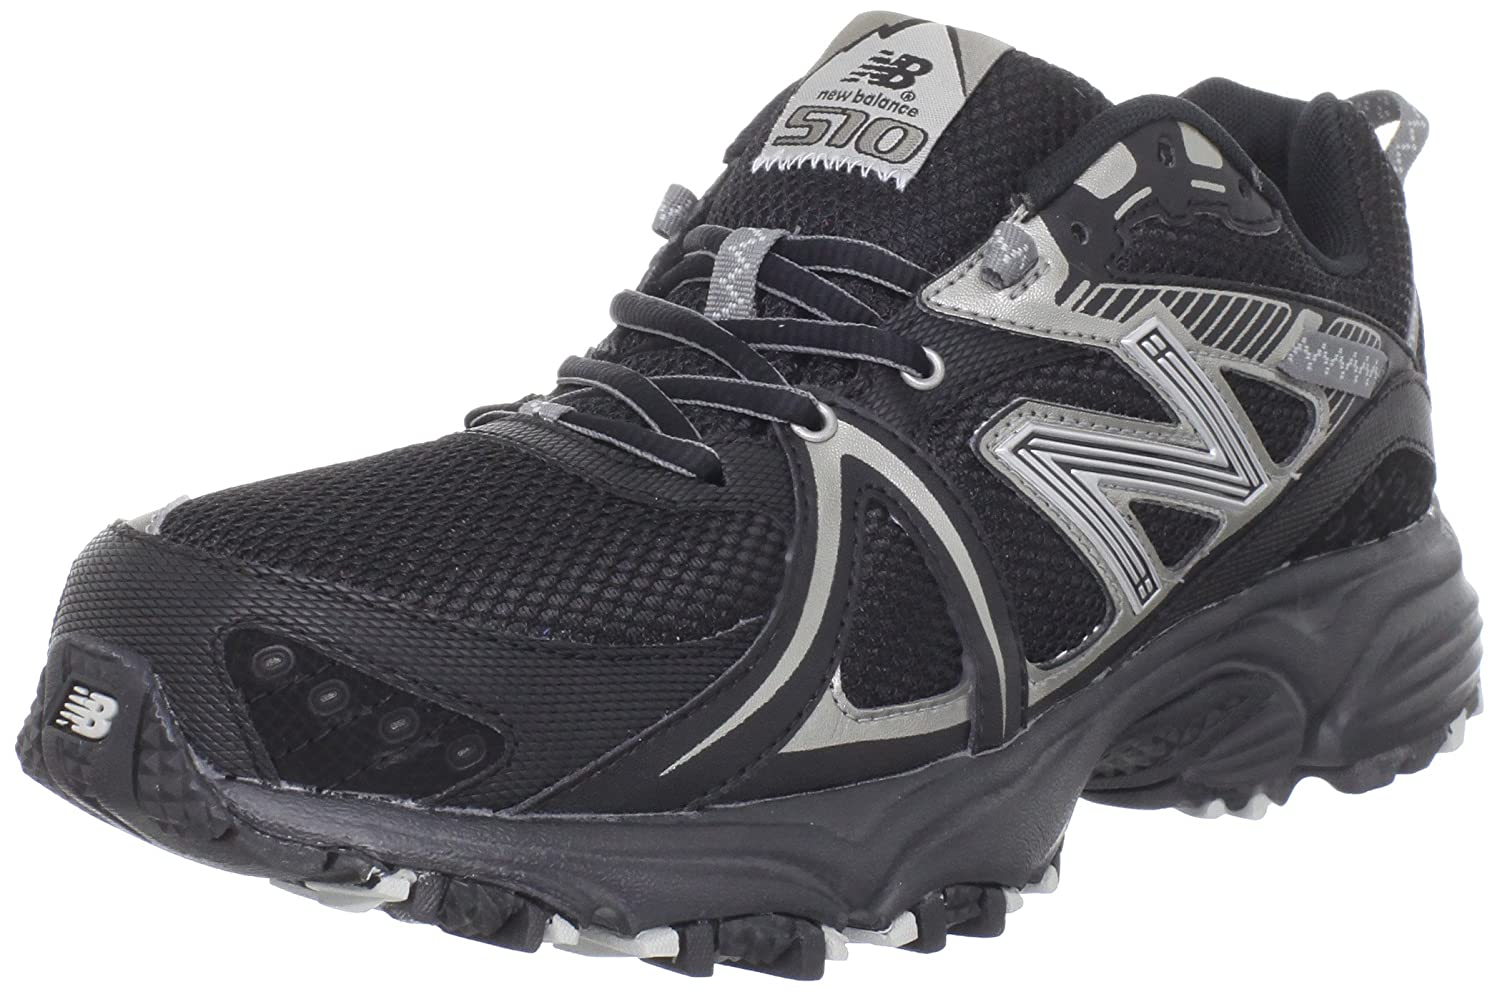 New Balance Men's MT510 Trail-Running Shoe